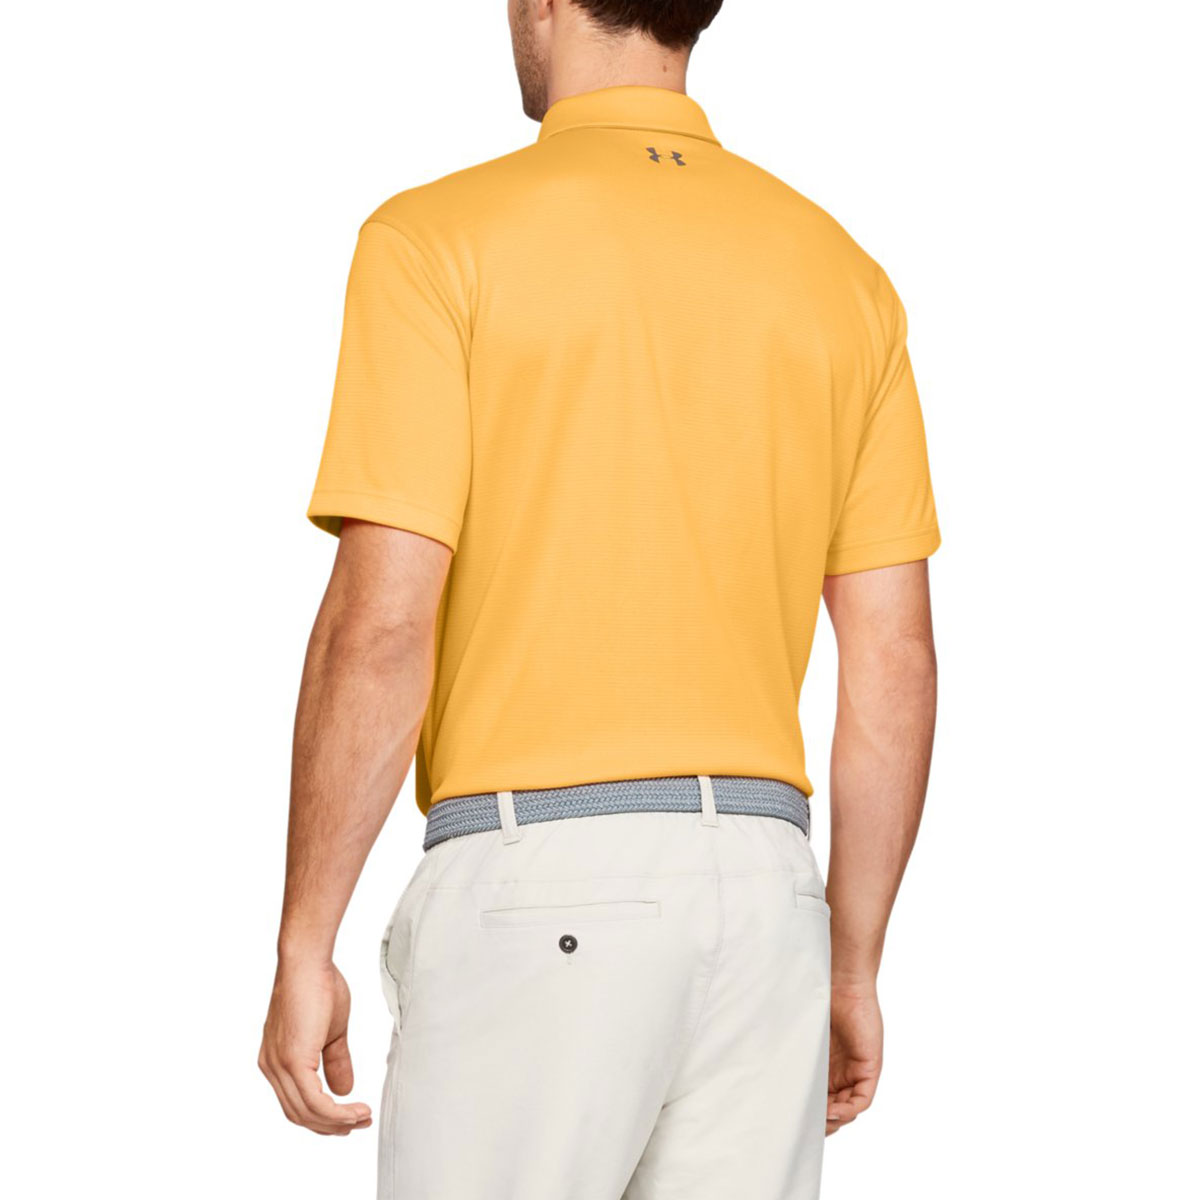 Under-Armour-Mens-Golf-Tech-Wicking-Textured-Soft-Light-Polo-Shirt thumbnail 45